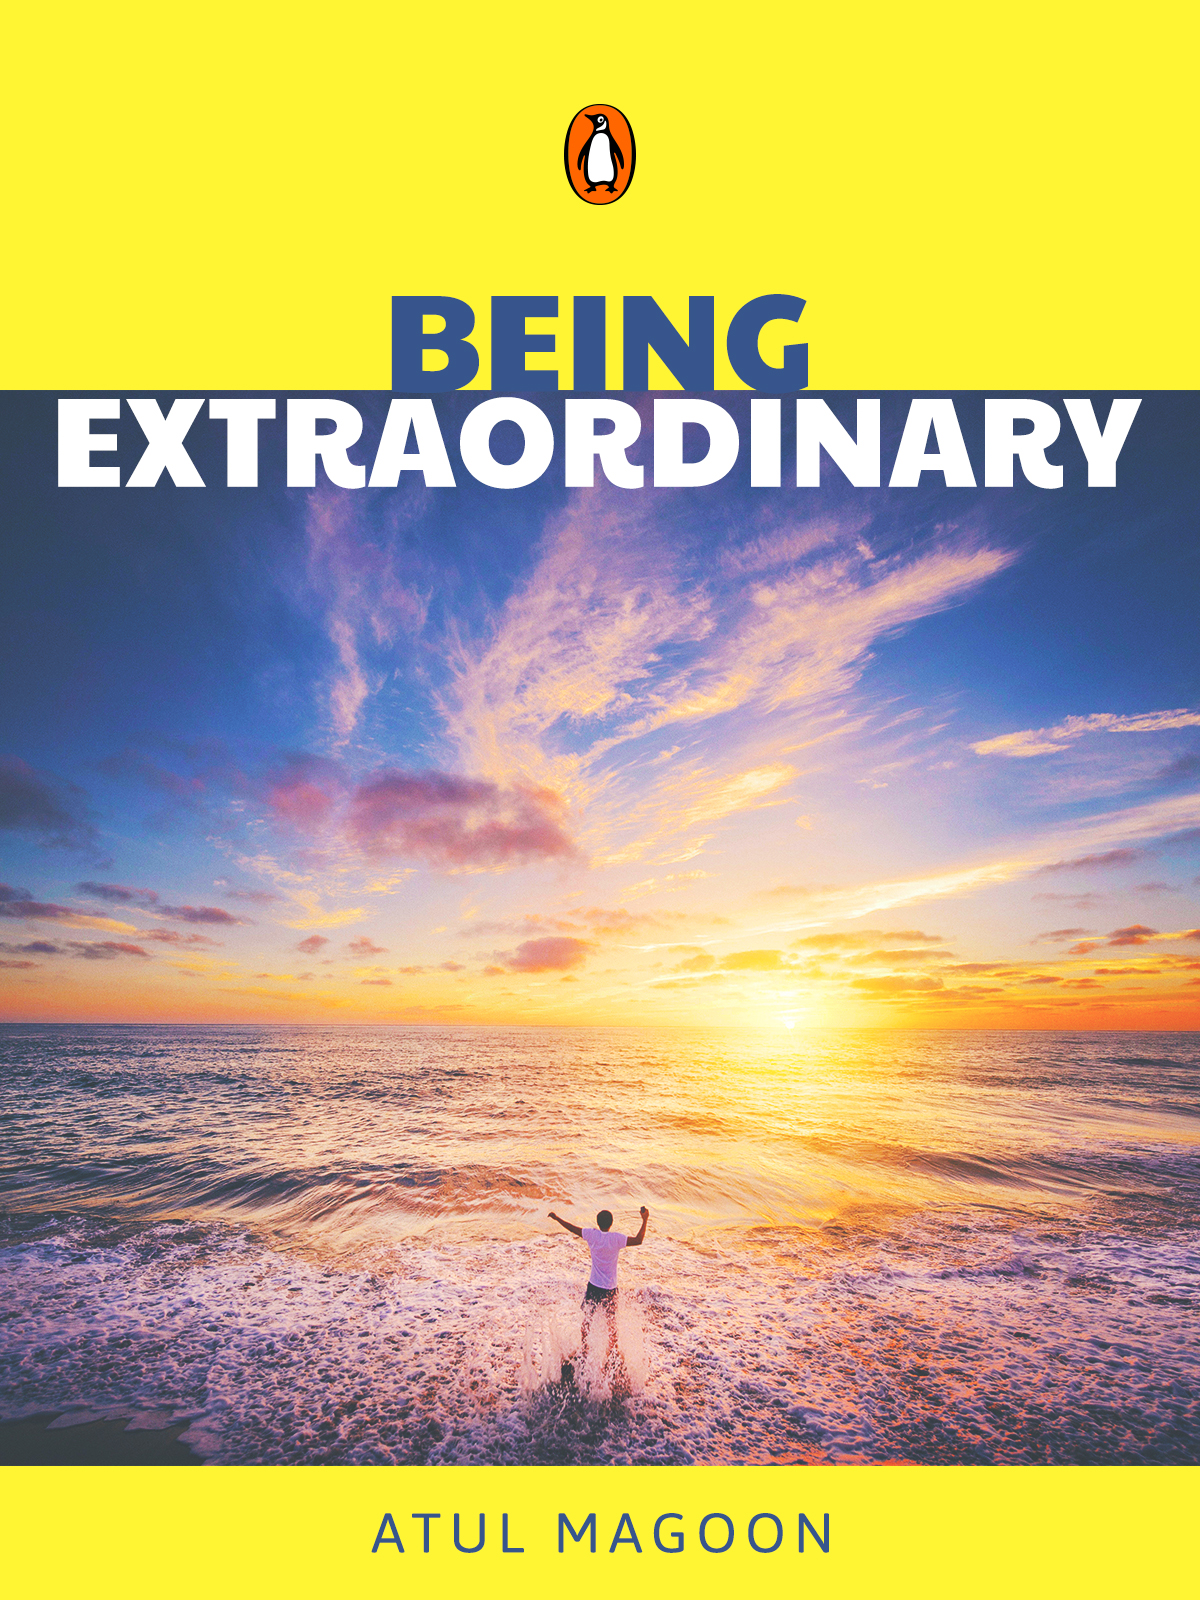 Being Extraordinary